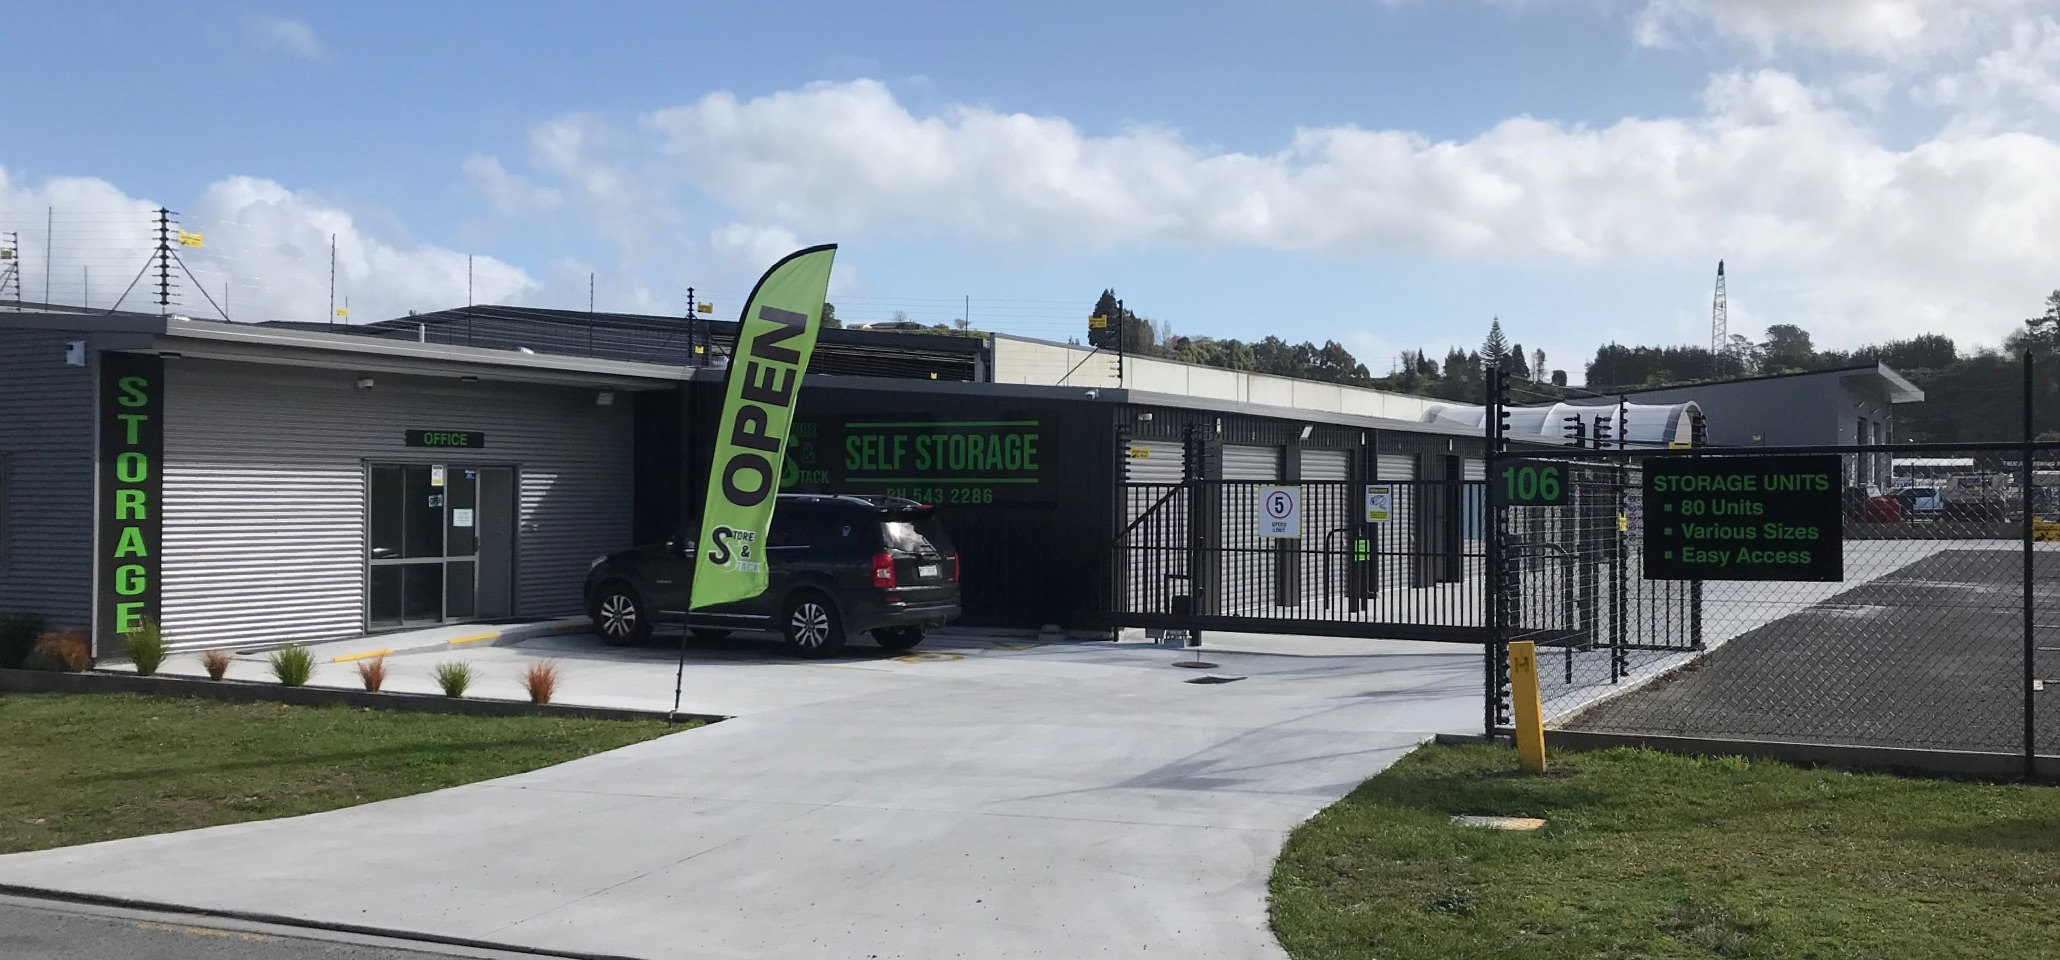 The Ten Self Storage Questions Every Customer Should Ask